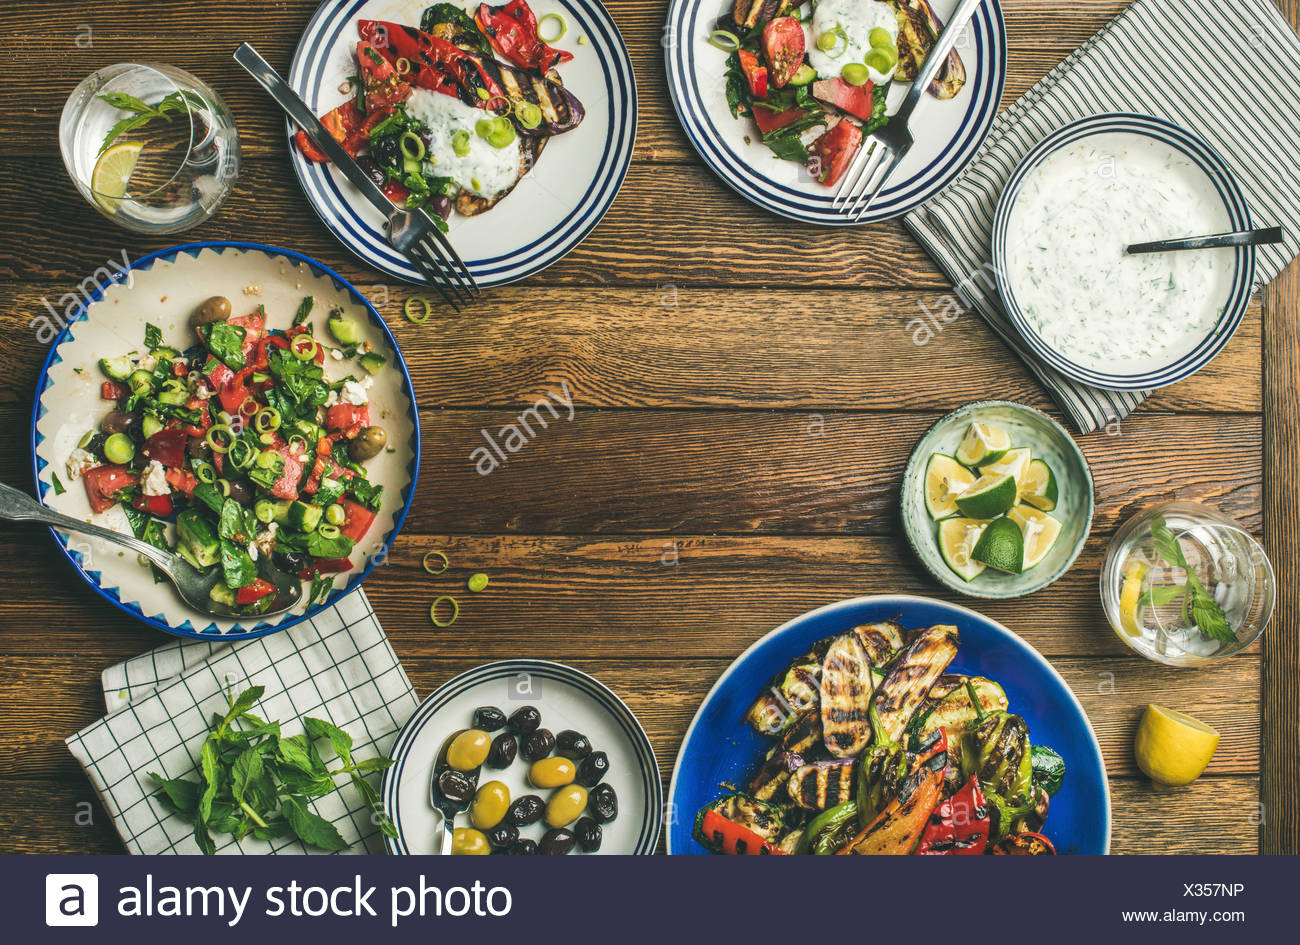 Flat-lay of healthy dinner table setting. Fresh salad, grilled vegetables with yogurt sauce, pickled olives over wooden background, copy space, select - Stock Image